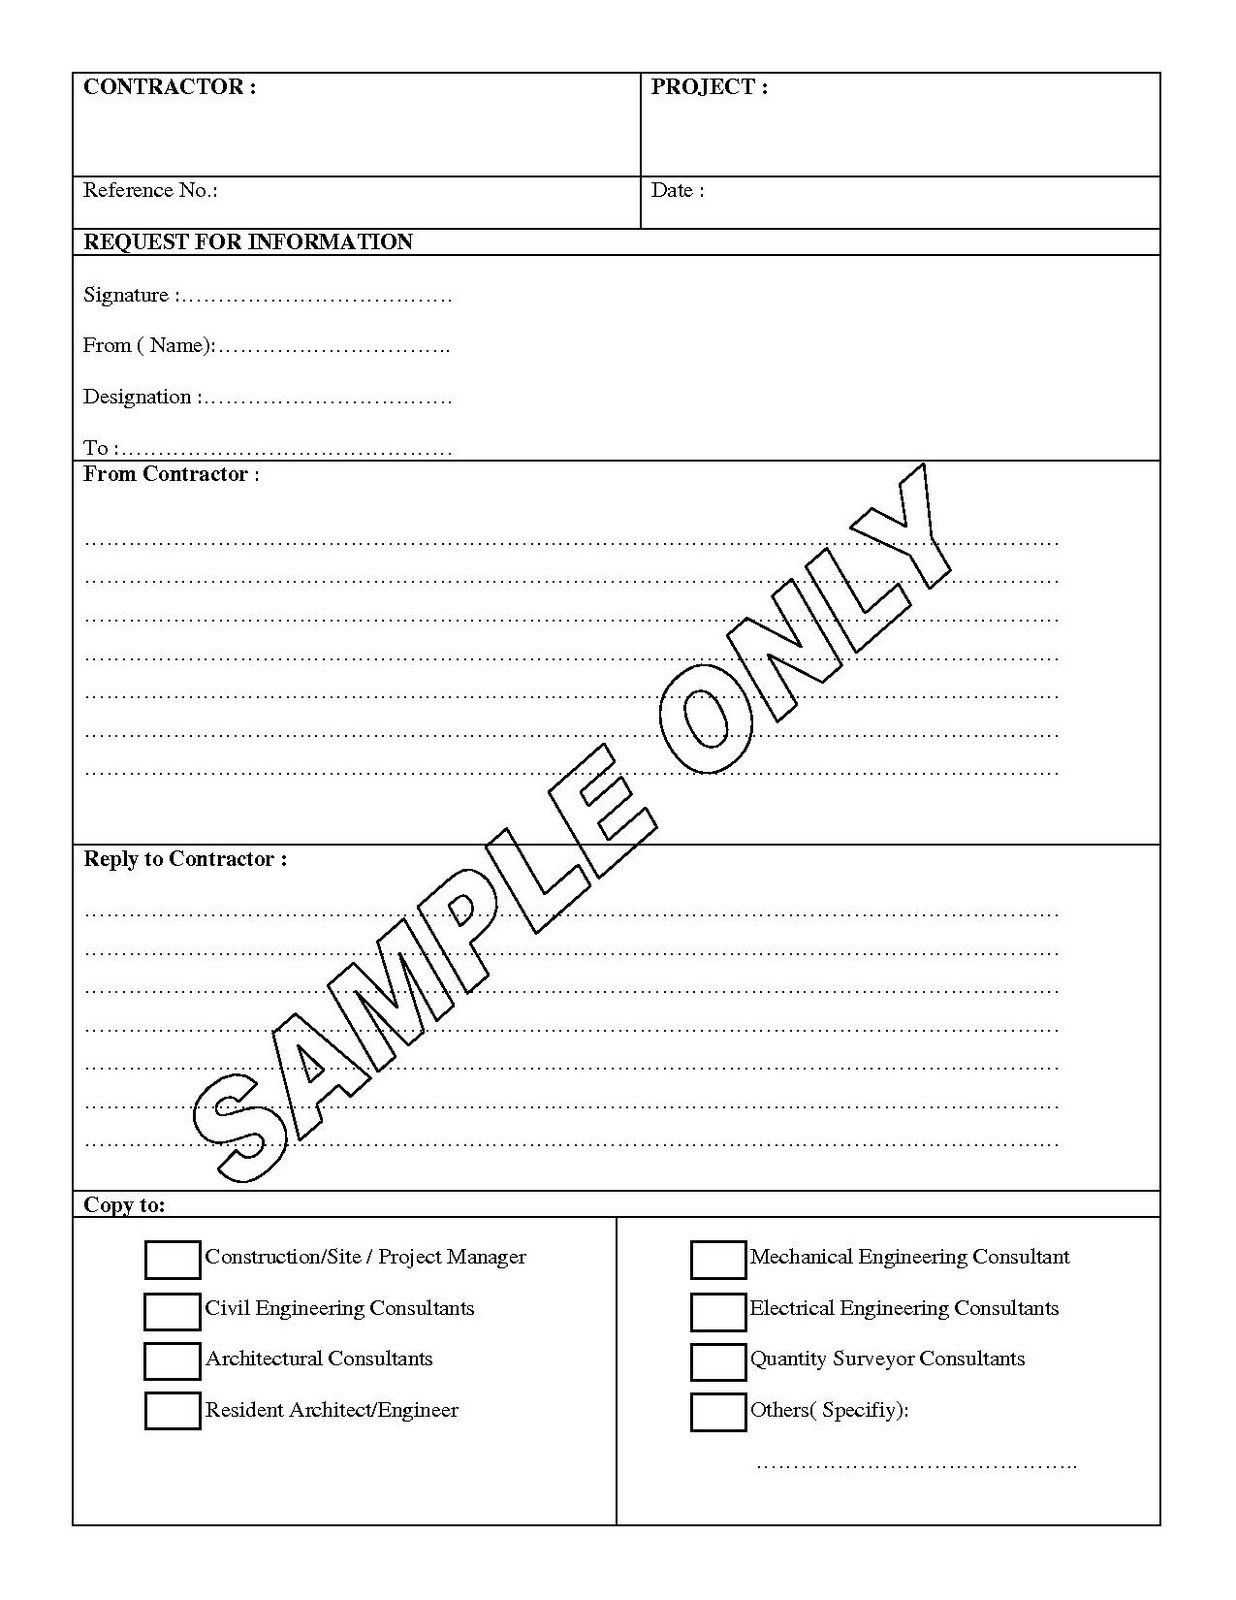 Request For Information Template Construction Fresh Request For Information Template Templates Certificate Templates Templates Free Design